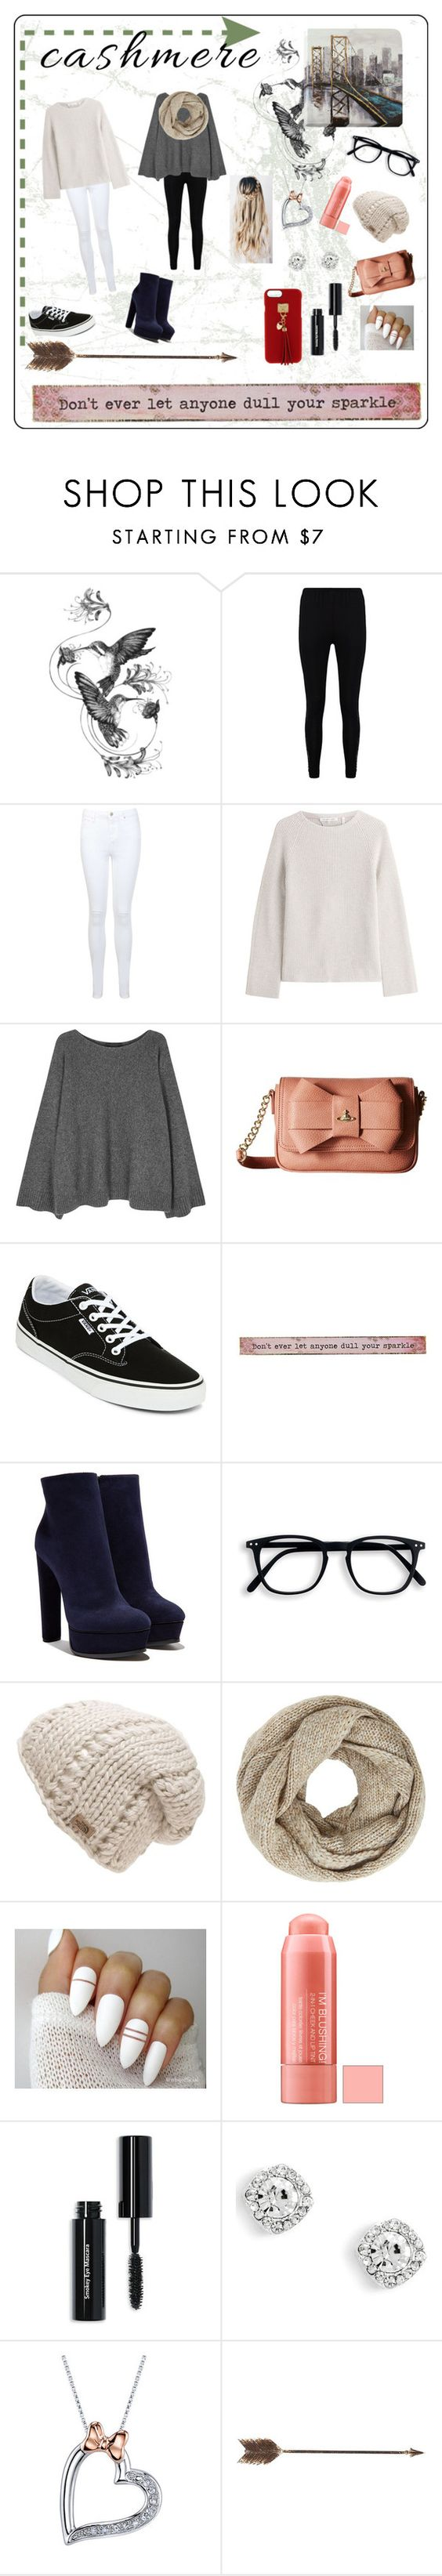 """""""Cashmere Whatever👌🏻"""" by whalestalker ❤ liked on Polyvore featuring Emily Carter, Boohoo, Miss Selfridge, Helmut Lang, The Row, Vivienne Westwood, Vans, Natural Life, Casadei and The North Face"""